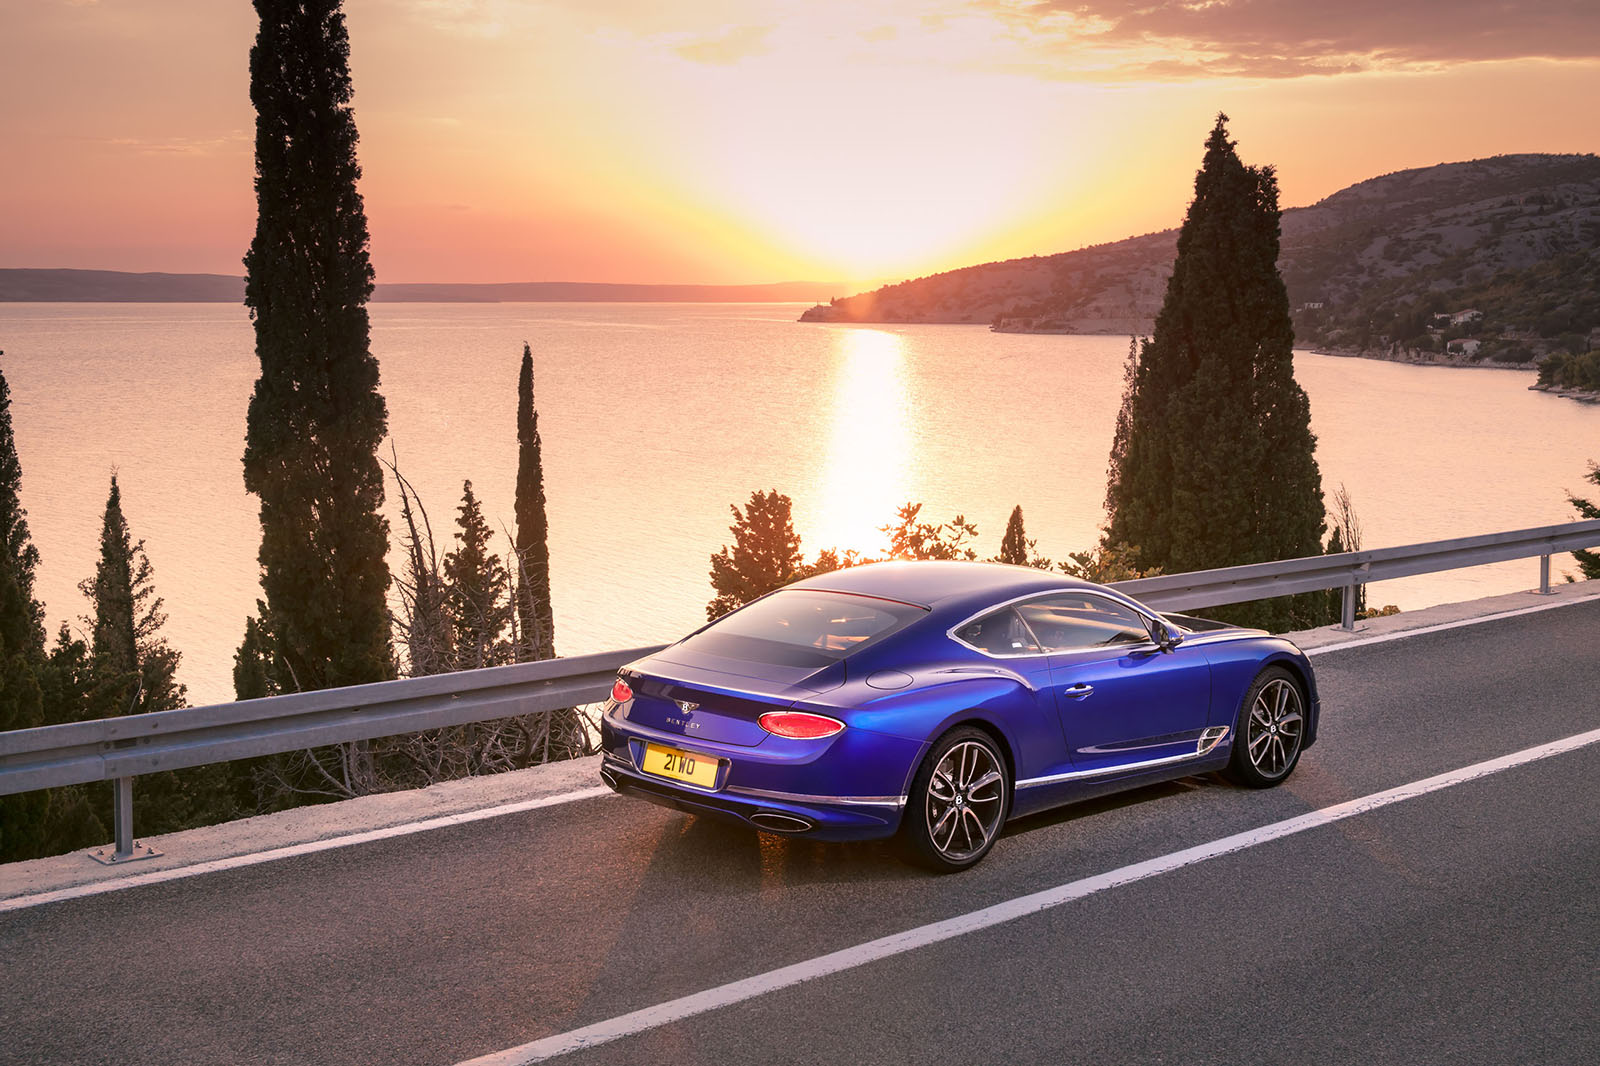 New Bentley Continental Gt Revealed Full Specs And Video Autocar Home Switches 4 Way It Contains 60 More Air Volume Than The Previous Single Chamber Springs Can Switch Chambers In Out Of Use Giving A Chassis Set Up For All Types